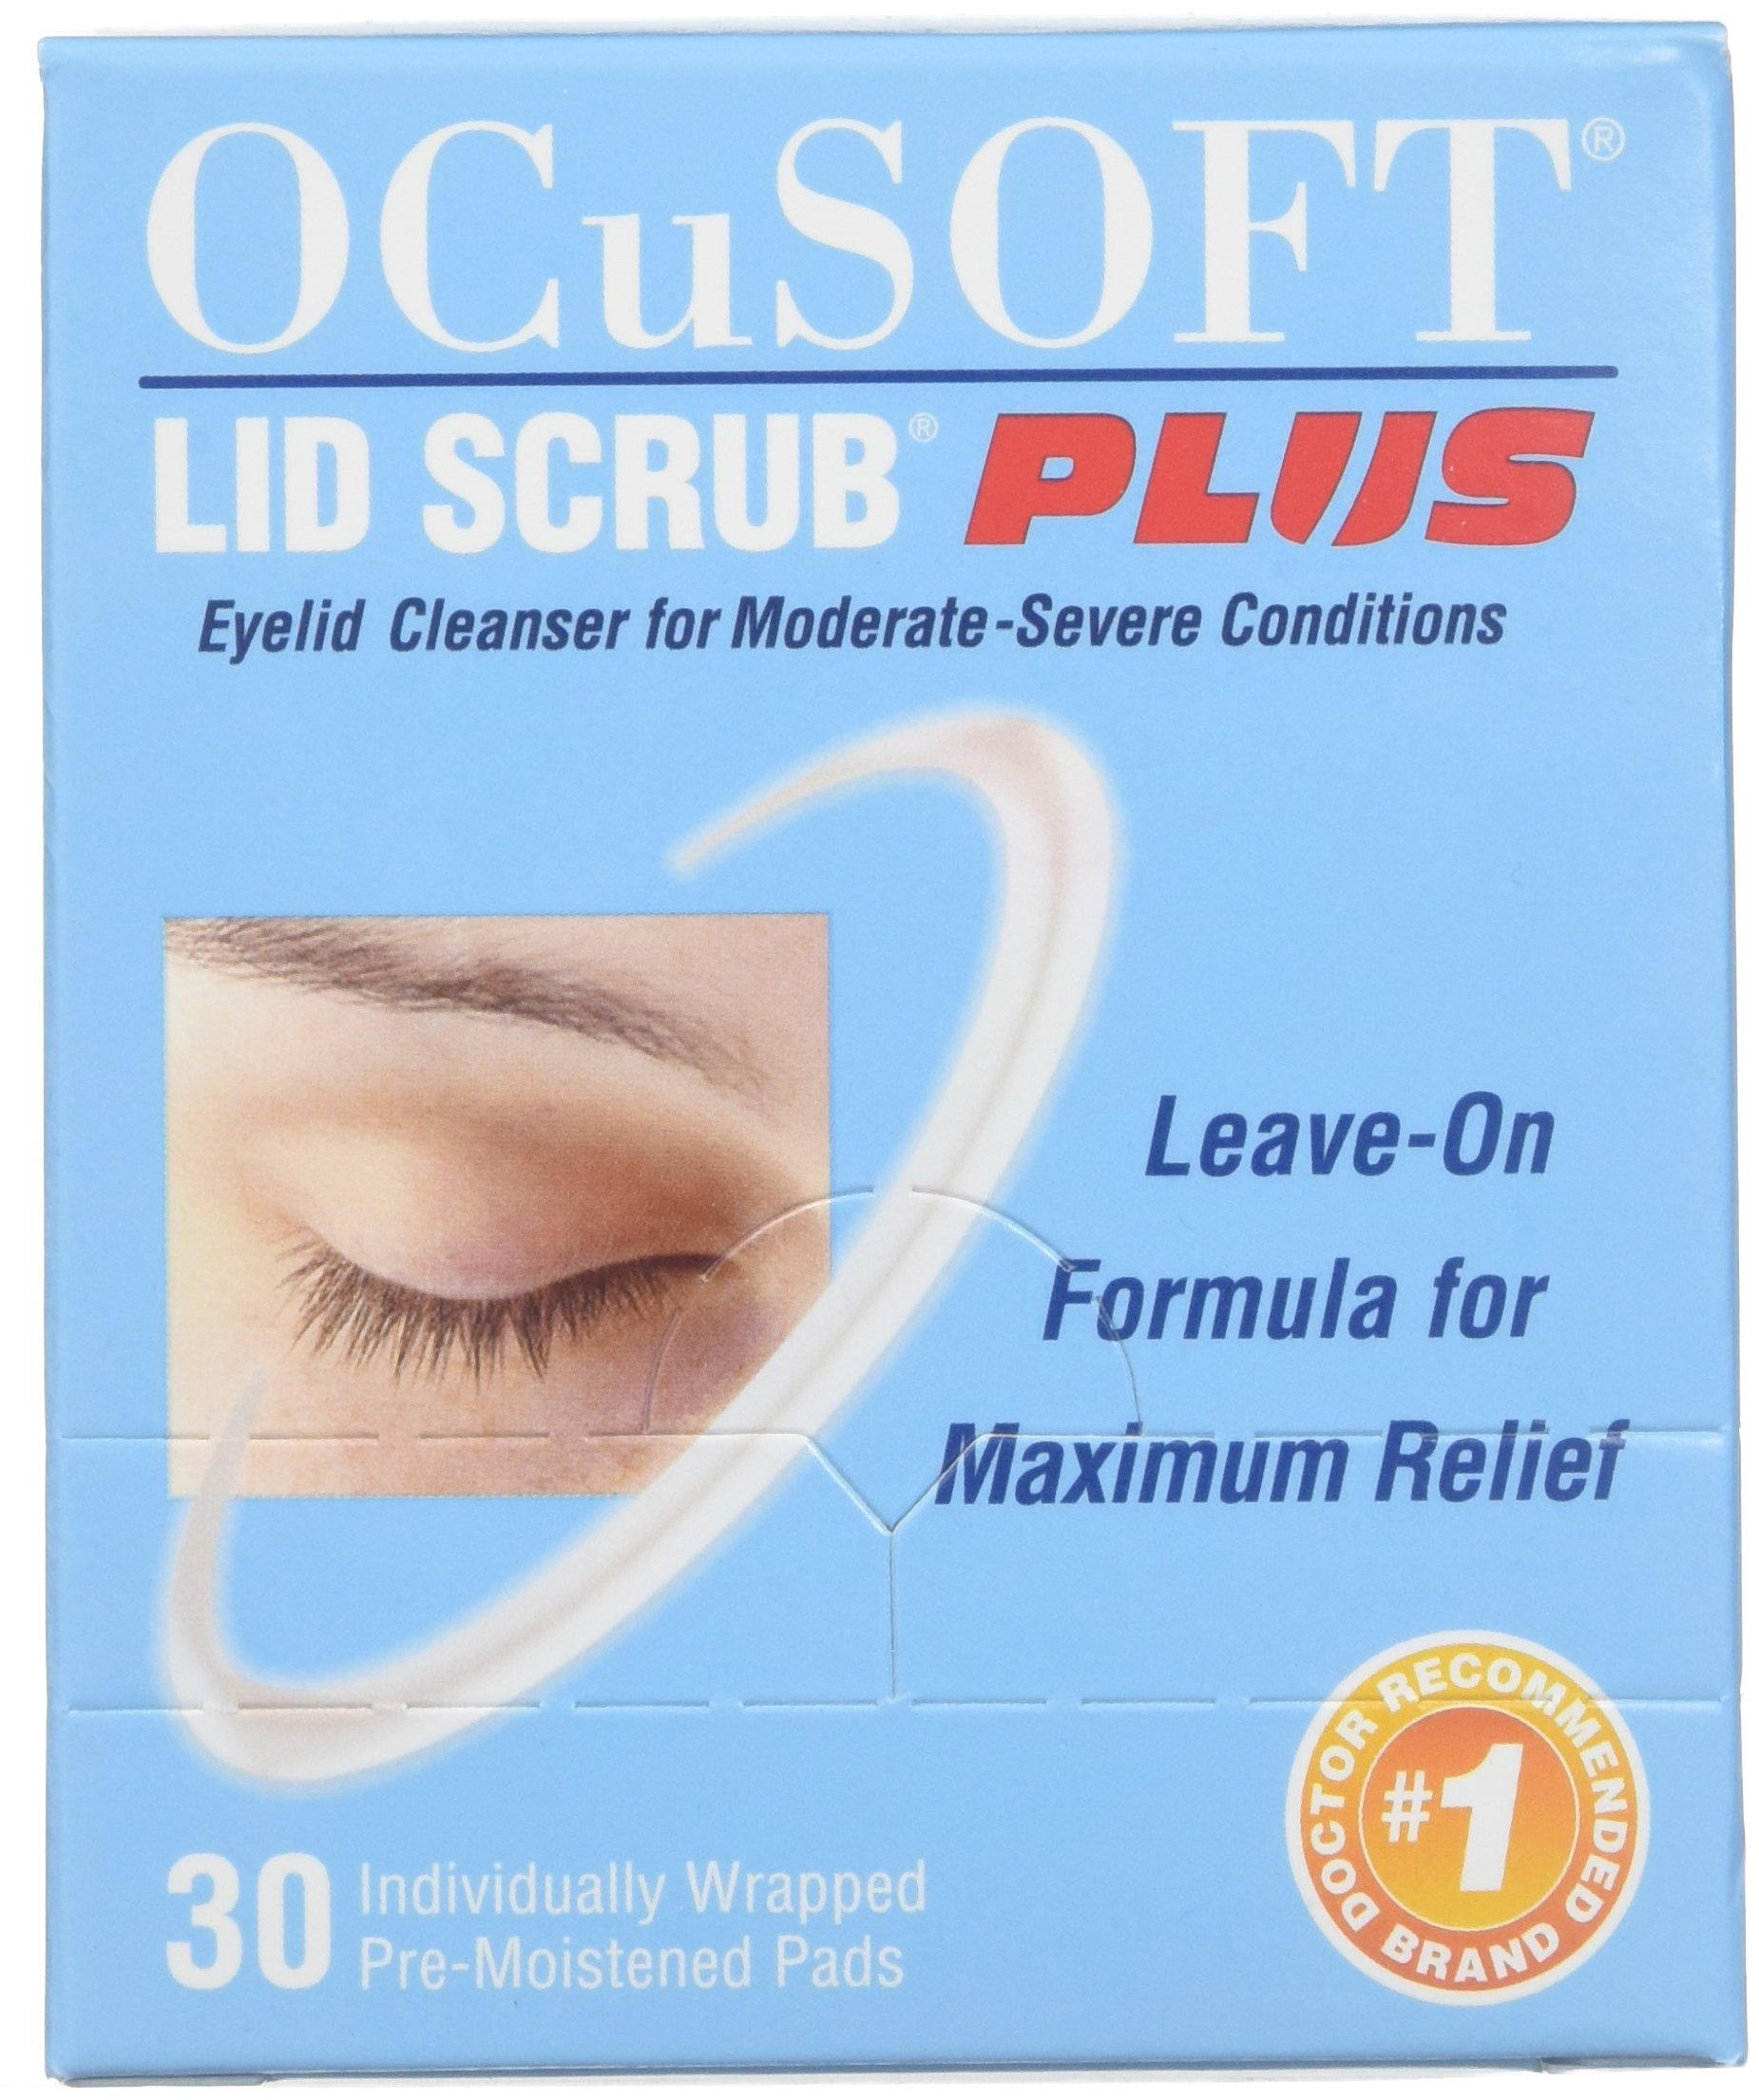 OCuSOFT Lid Scrub Plus, Pre-Moistened Pads, Individually Wrapped, 30 Pads (Pack of 2) by OCuSOFT